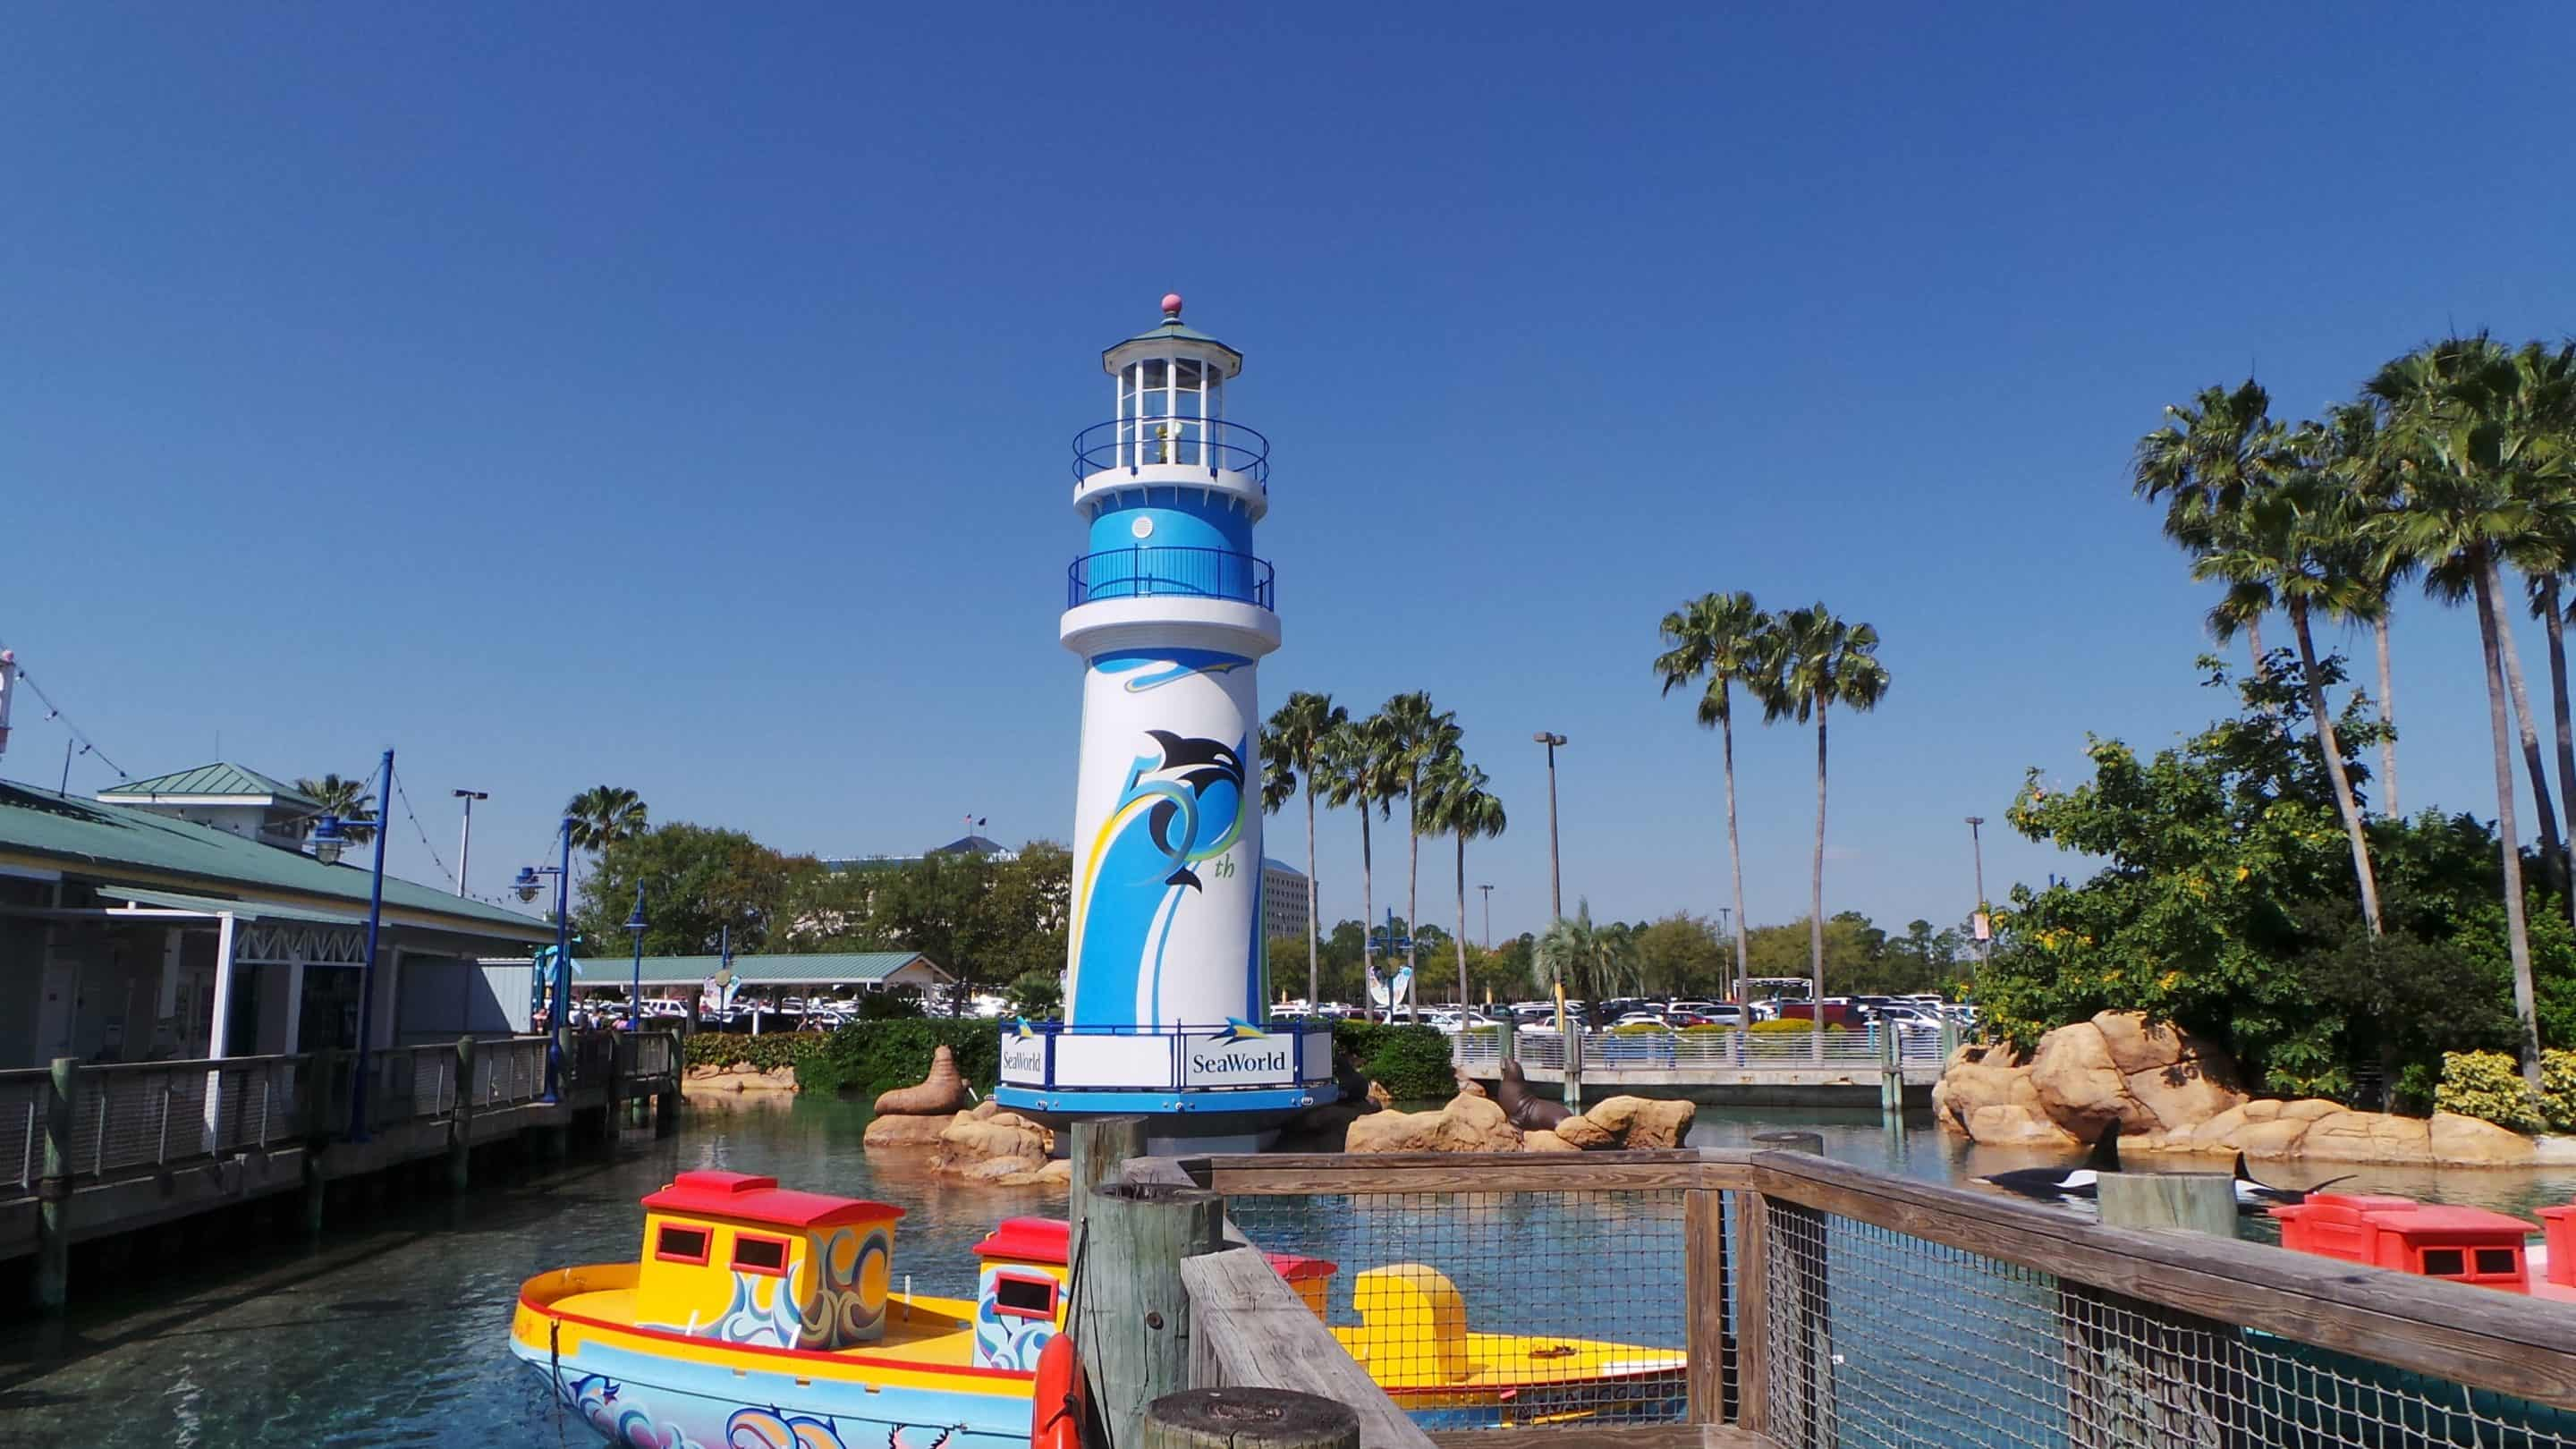 SeaWorld's Just for Kids and 50th Anniversay Sea of Surprises